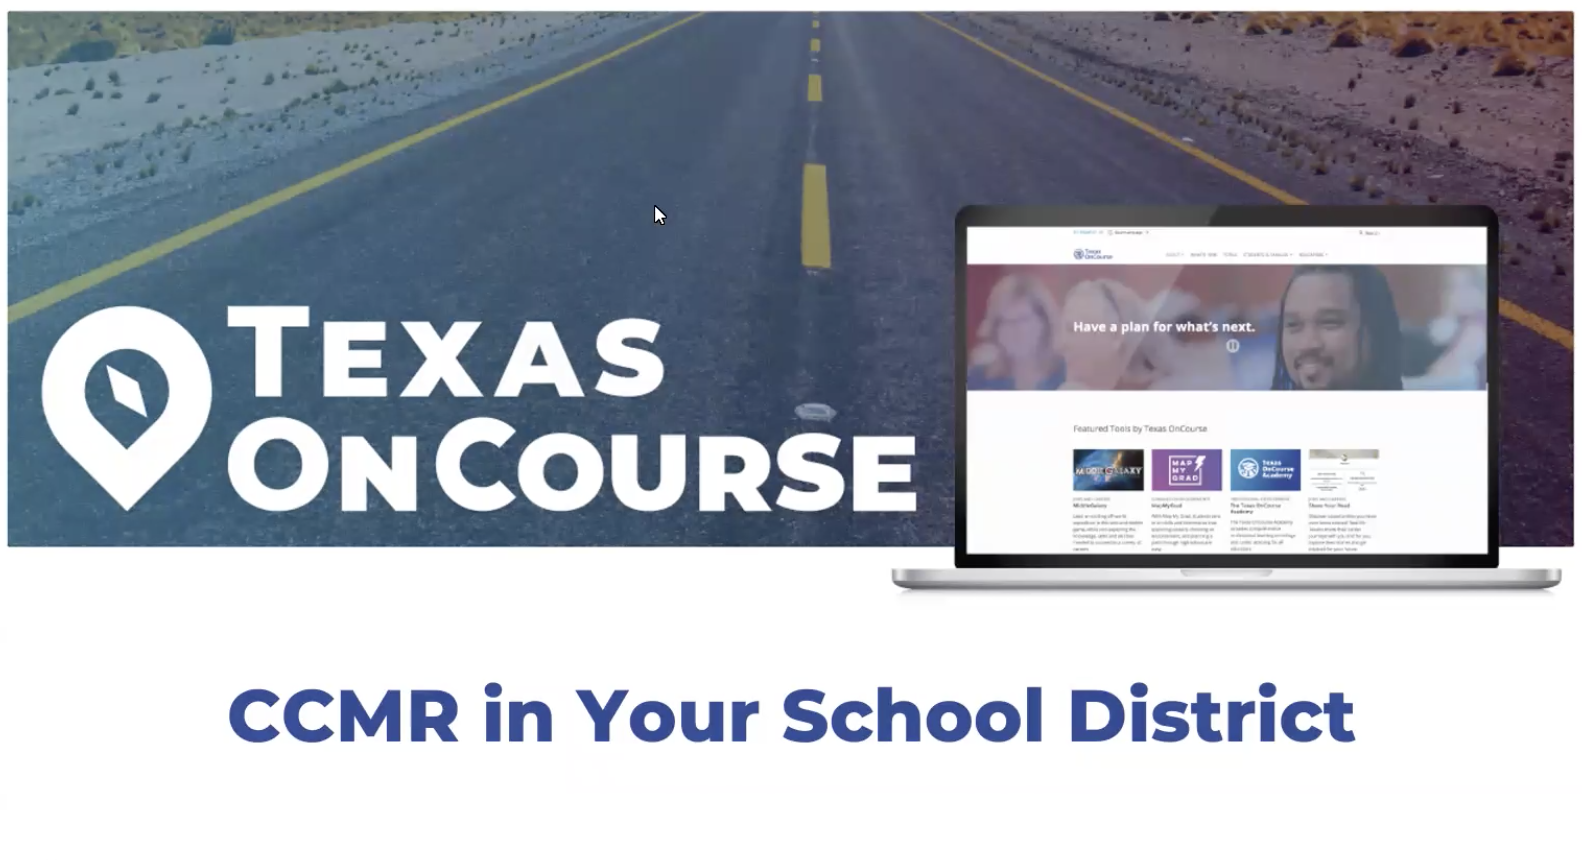 CCMR in Your School District